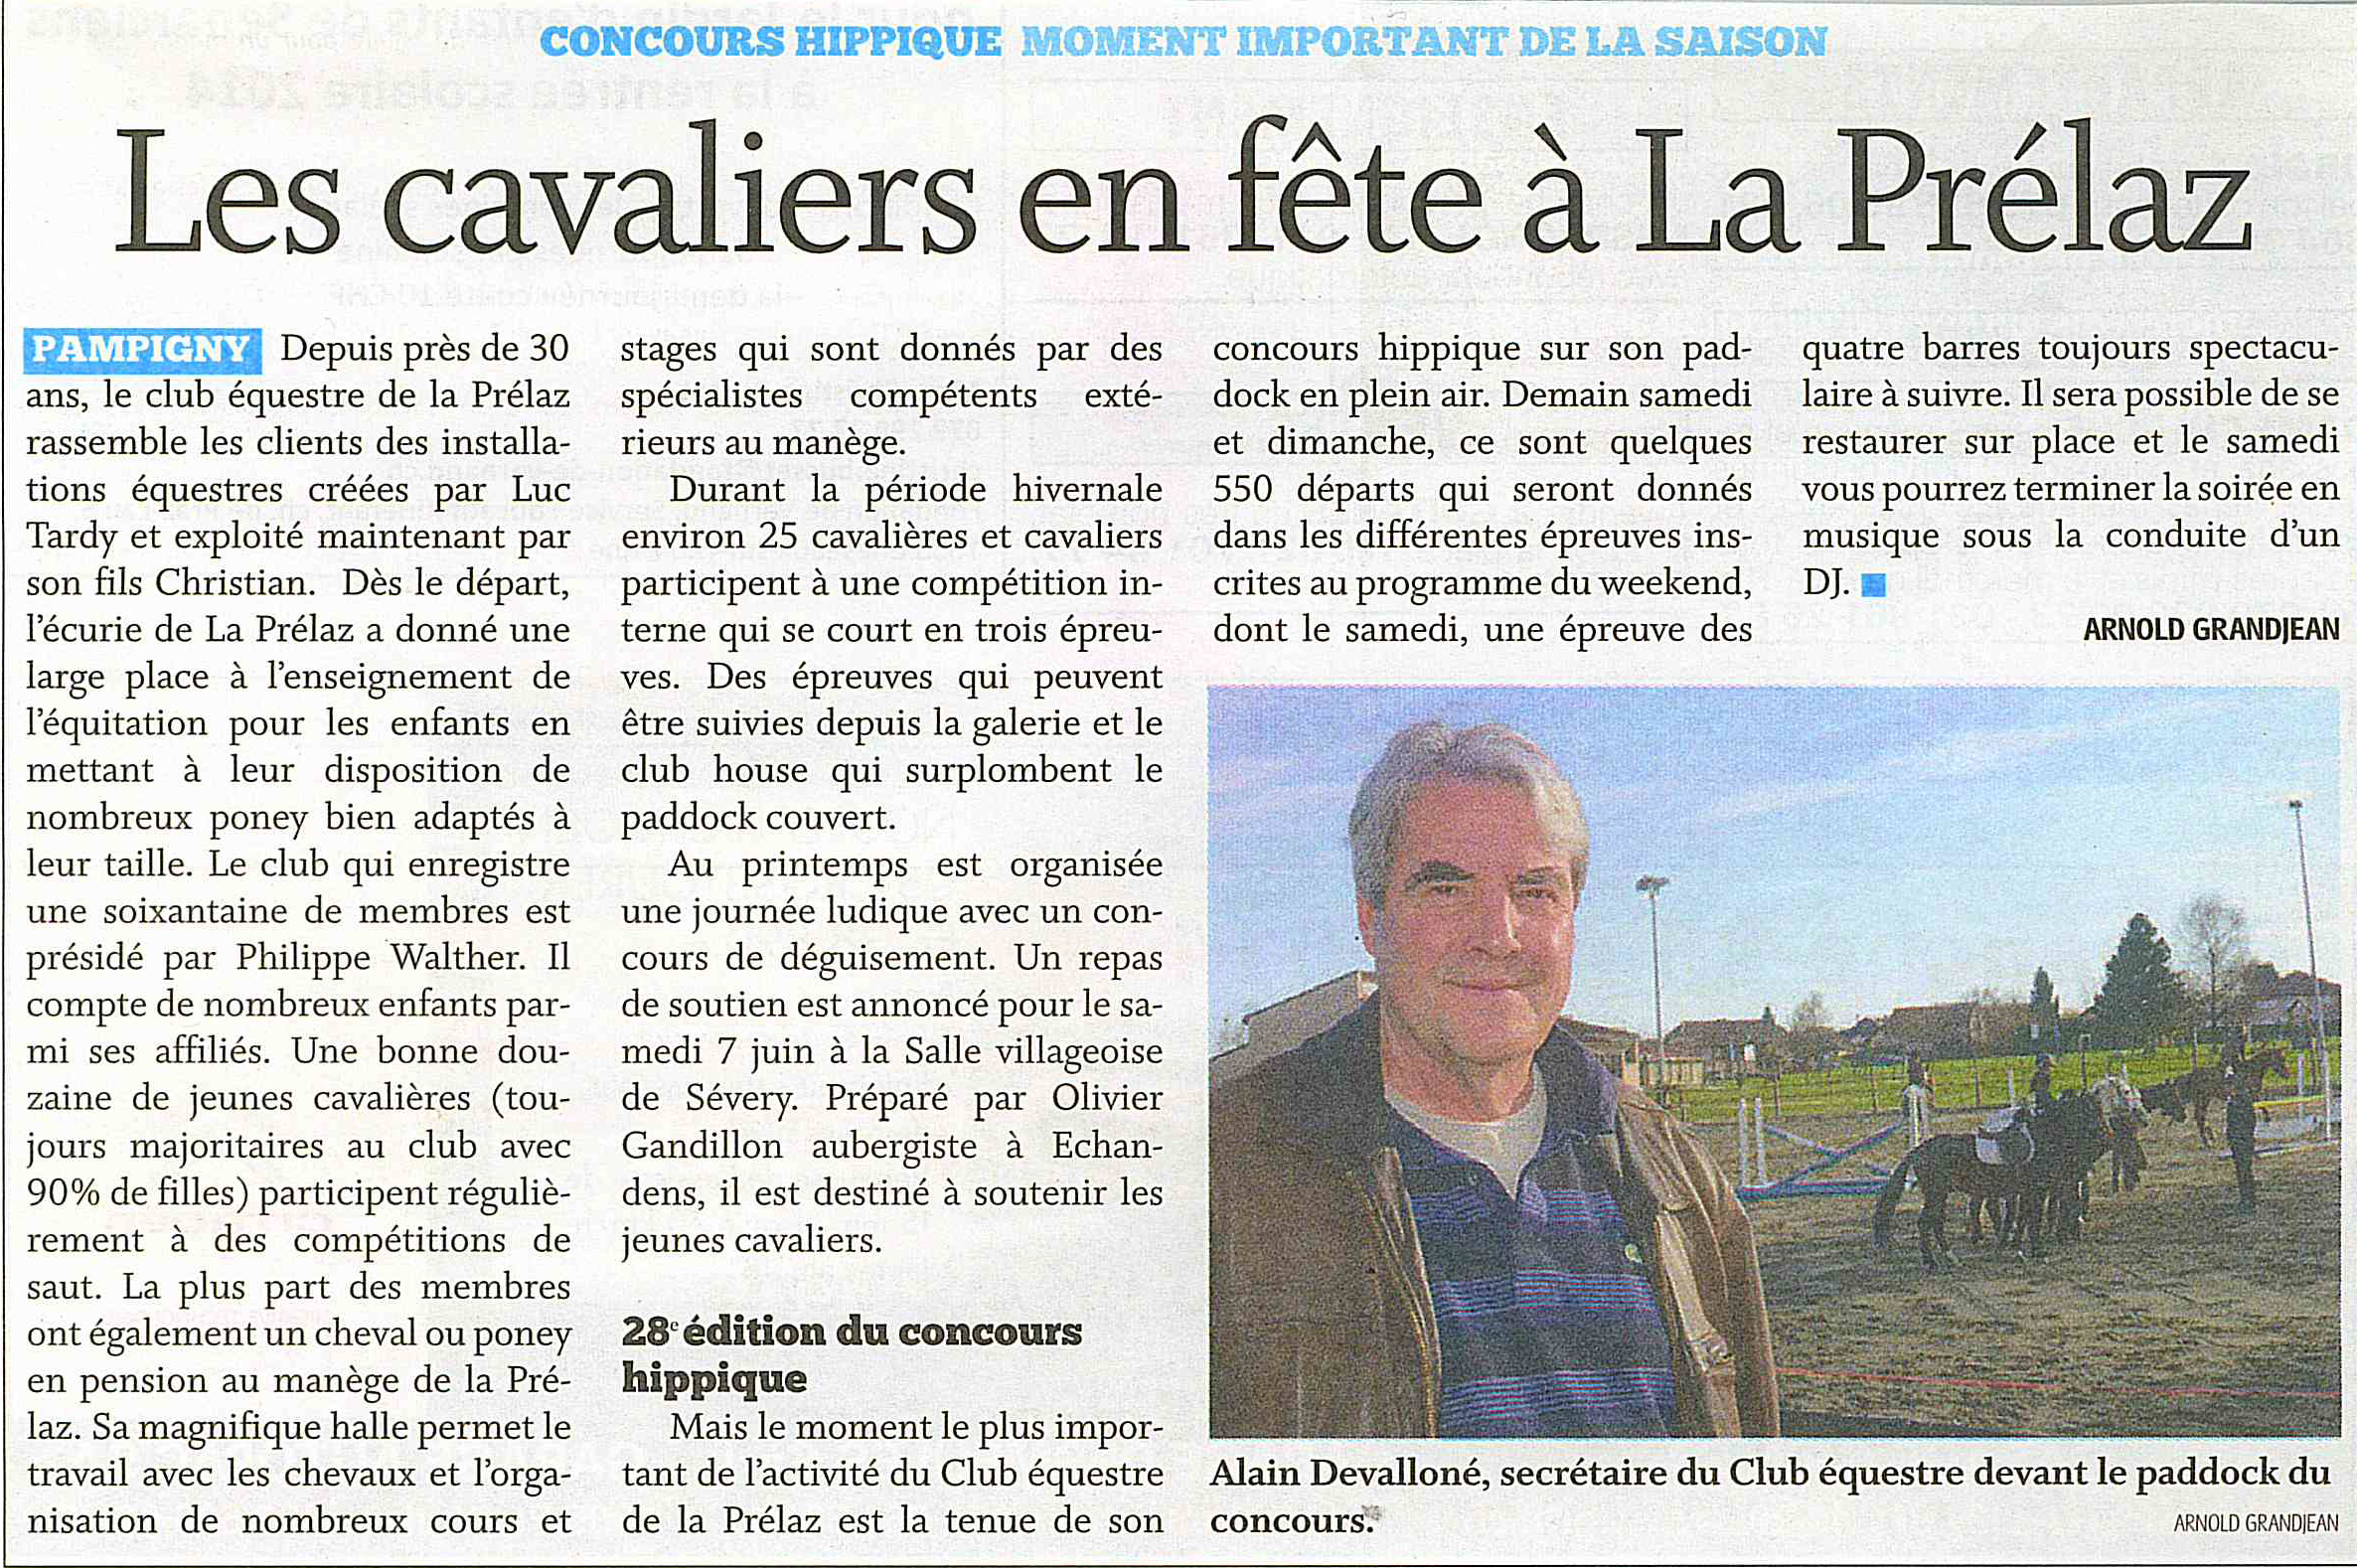 CS_PAMPIGNY_2014/journal-de-cossonay---23052014.png